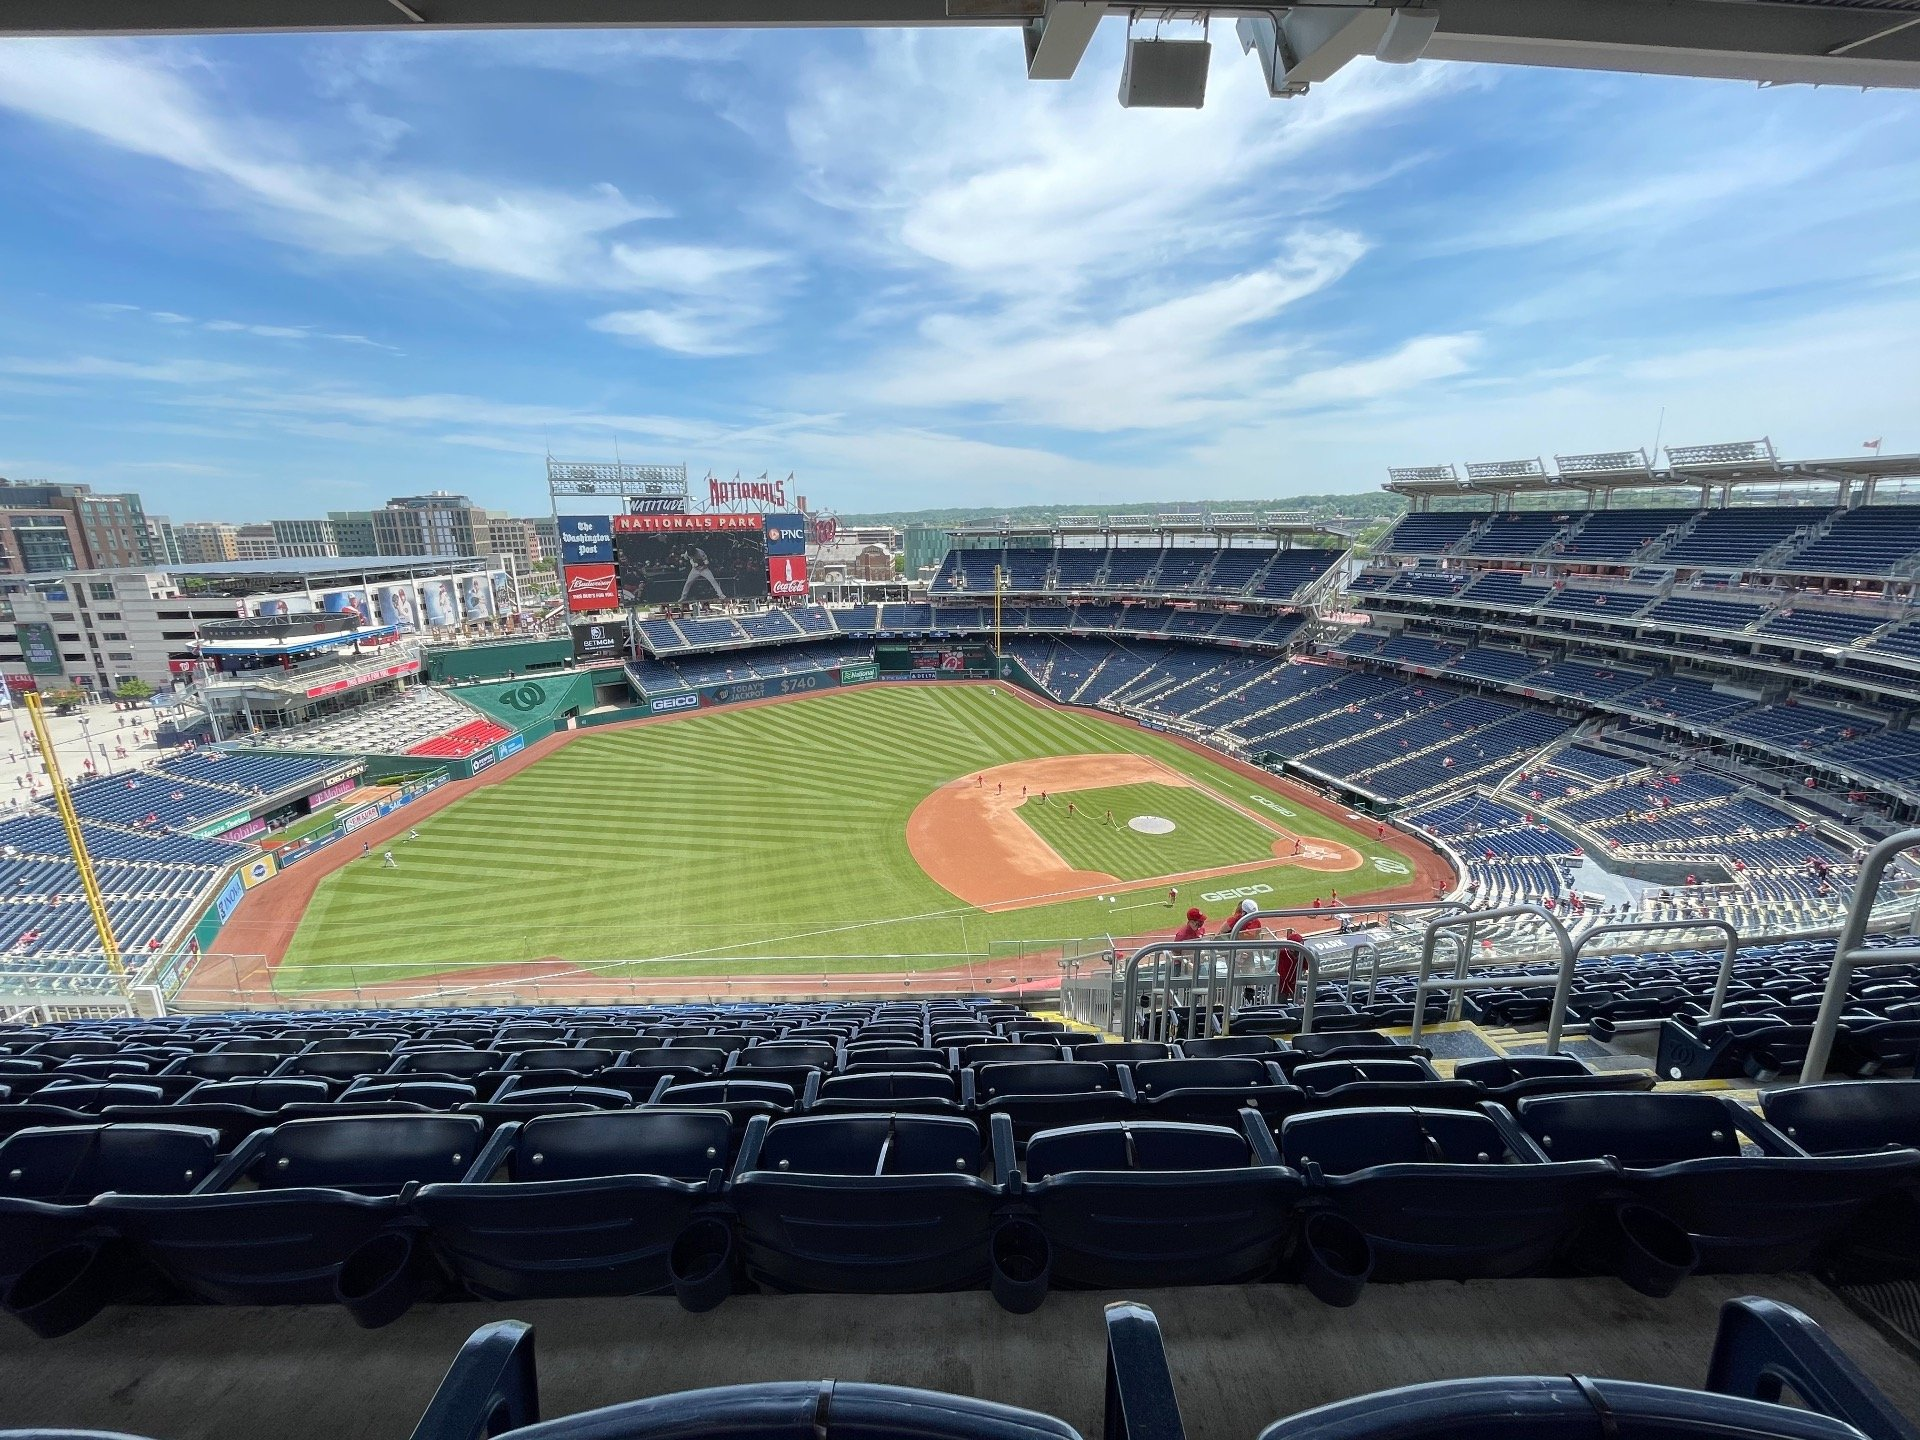 Nationals Park Section 405 Row N Seat 5